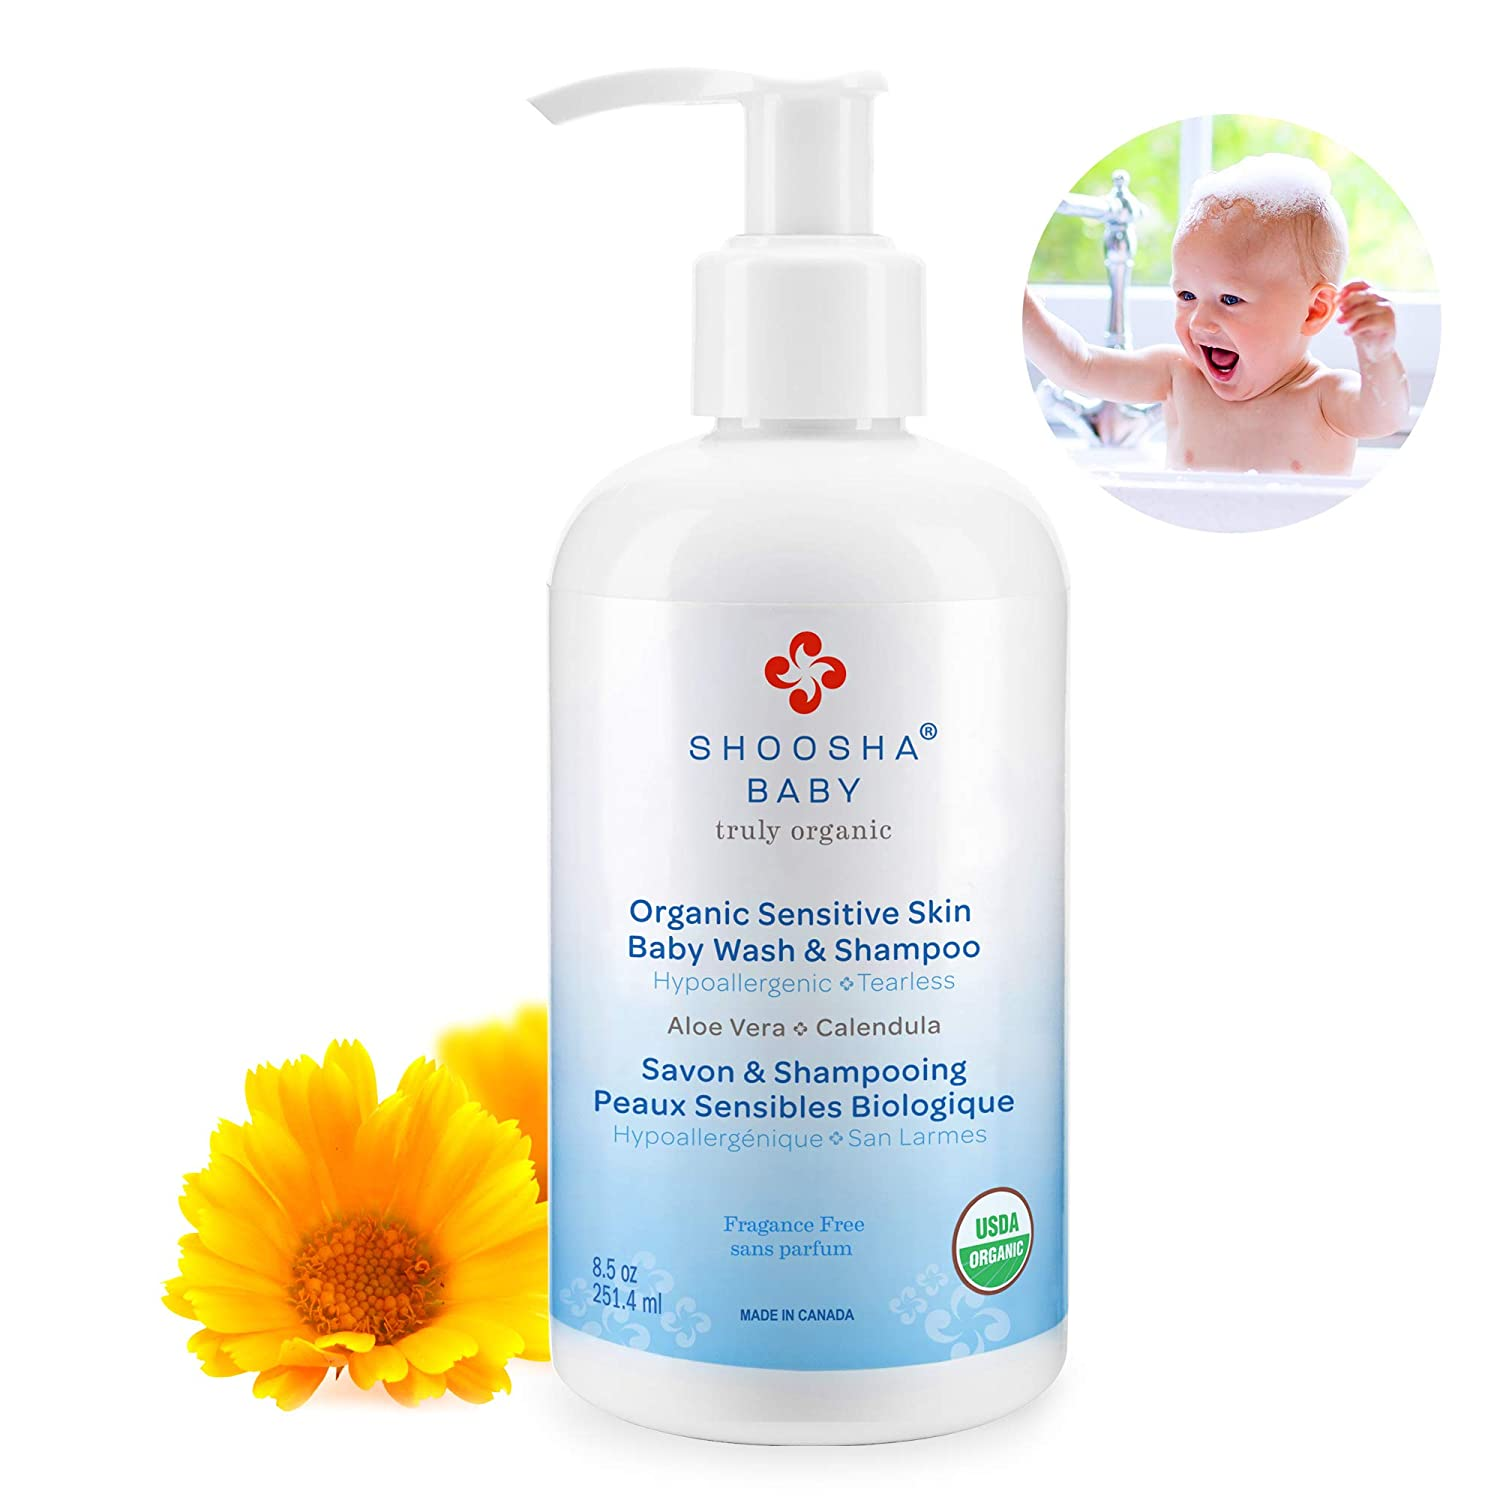 Baby Shampoo and Body Wash Fragrance Free, for Sensitive Skin, Kids Shampoo and Body Wash Tear Free, Hypoallergenic Body Wash, Liquid Hand Soap for the Whole Family, 8.5 oz - Shoosha